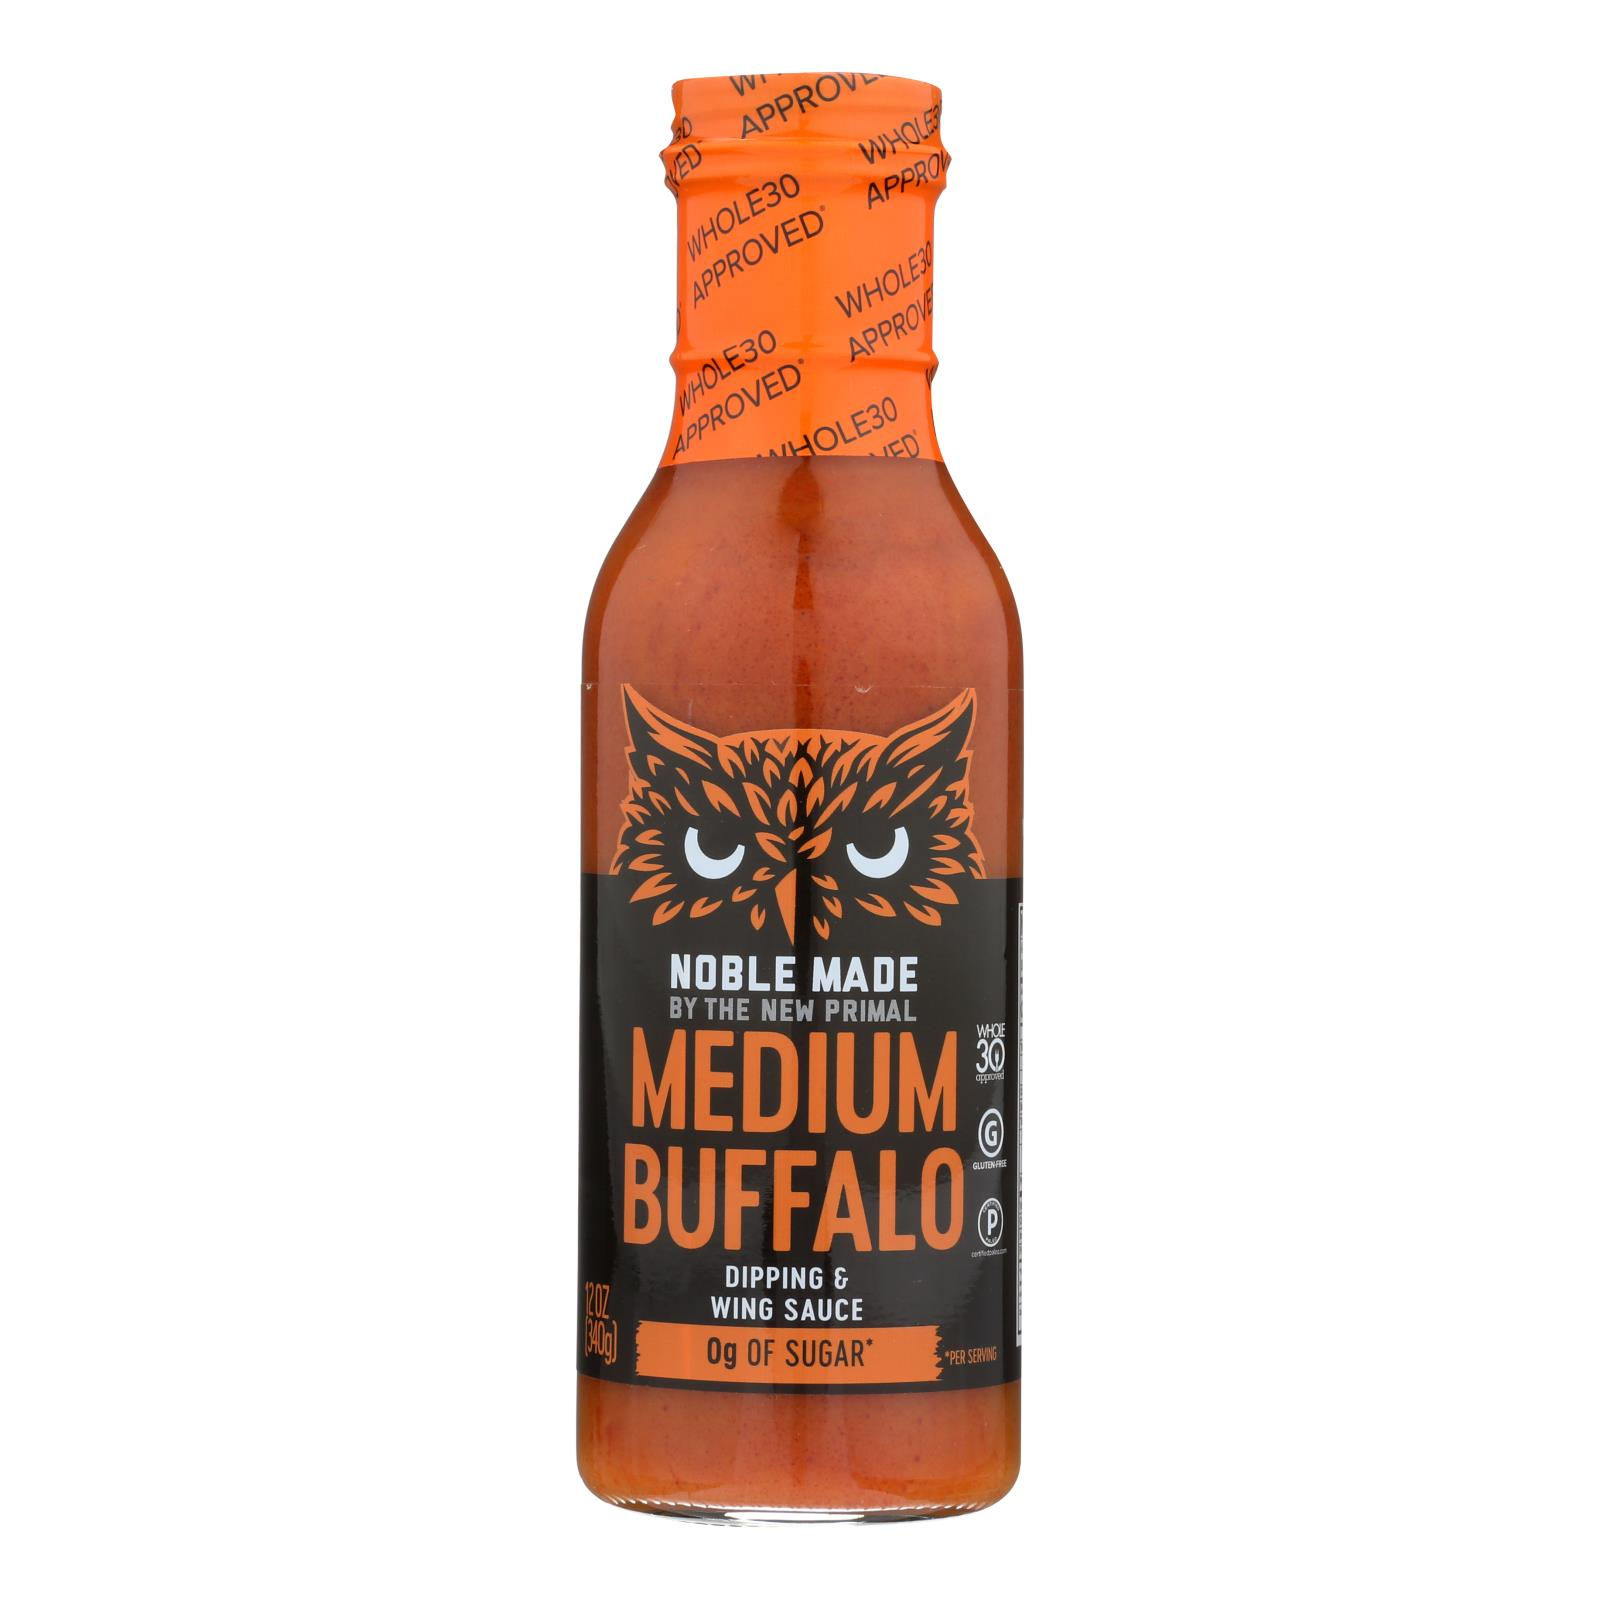 Noble Made By The New Primal Medium Buffalo Dipping & Wing Sauce - Case of 6 - 12 OZ